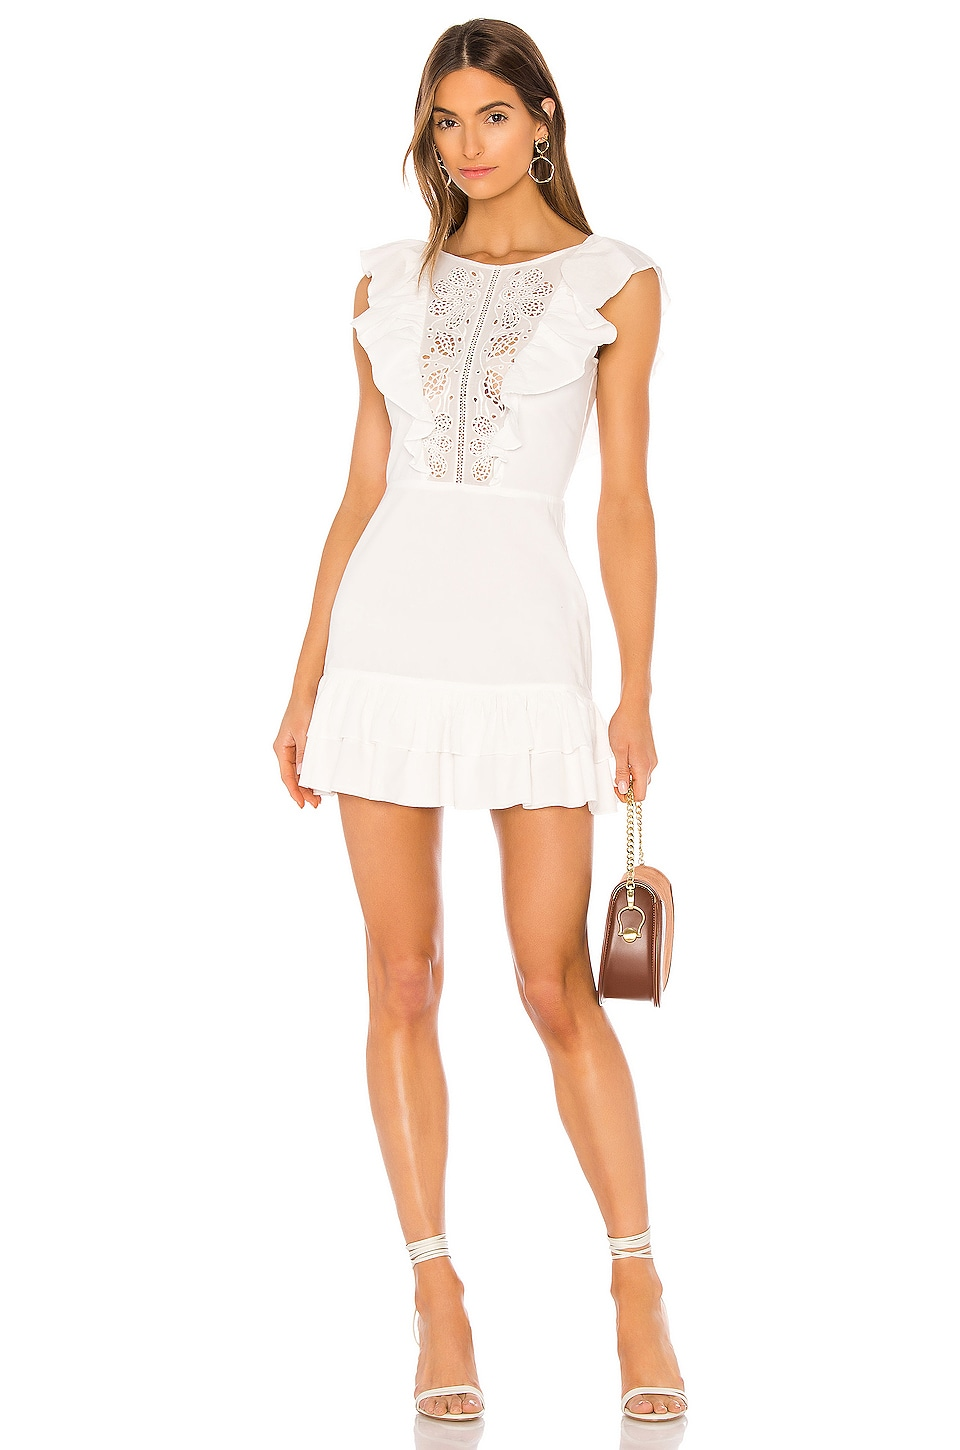 Lovers + Friends Willard Mini Dress in White